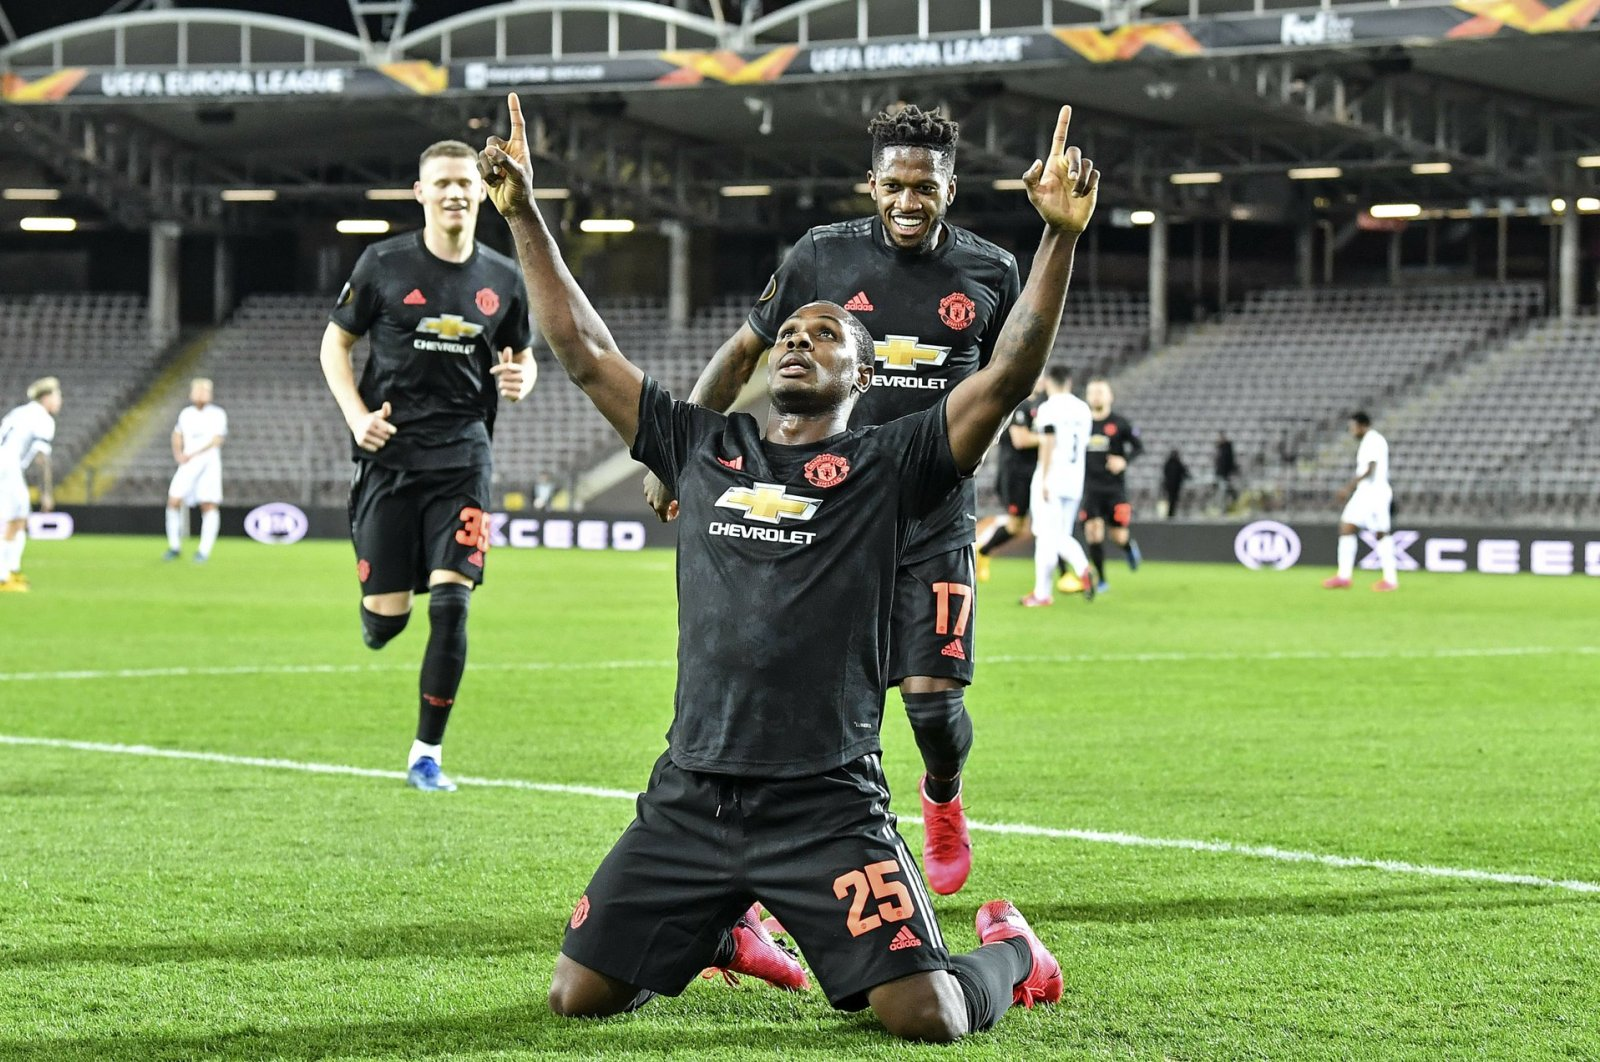 Manchester United's Odion Ighalo celebrates after scoring the opening goal during a Europa League match against Linzer ASK in Linz, Austria, Thursday, March 12, 2020. (AP Photo)